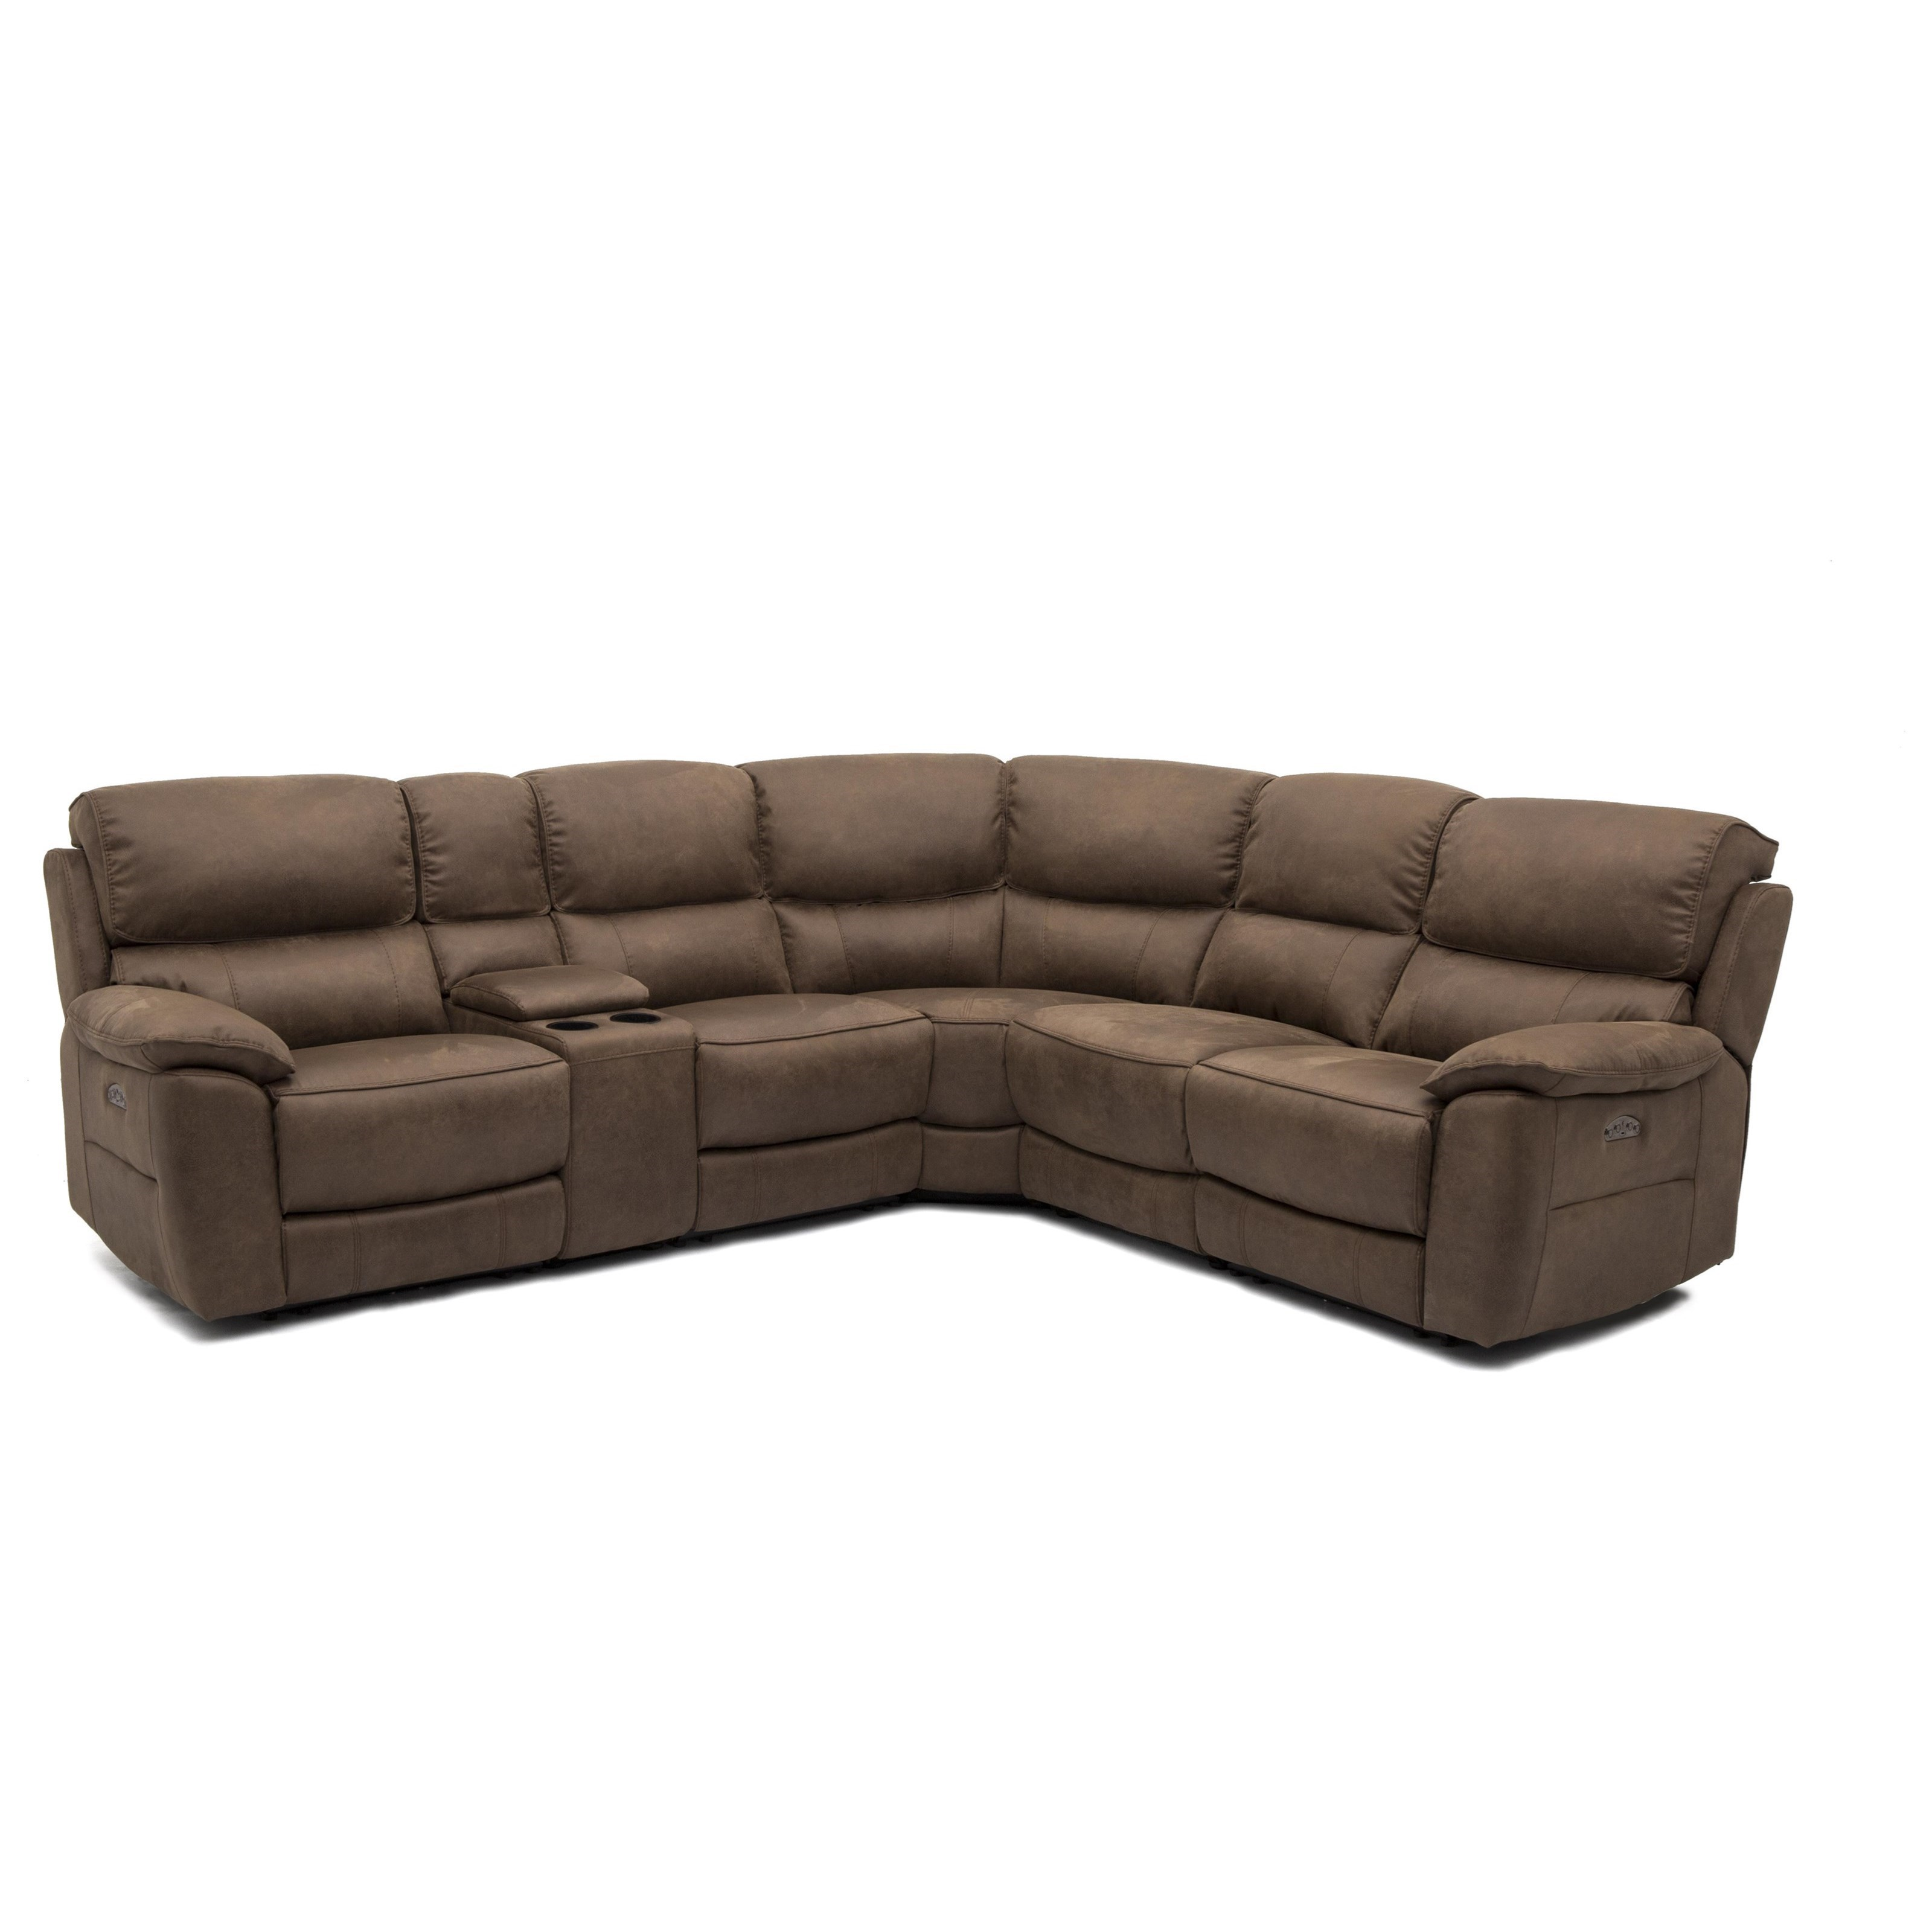 11472 Power Reclining Sectional With 2 Power Headrests